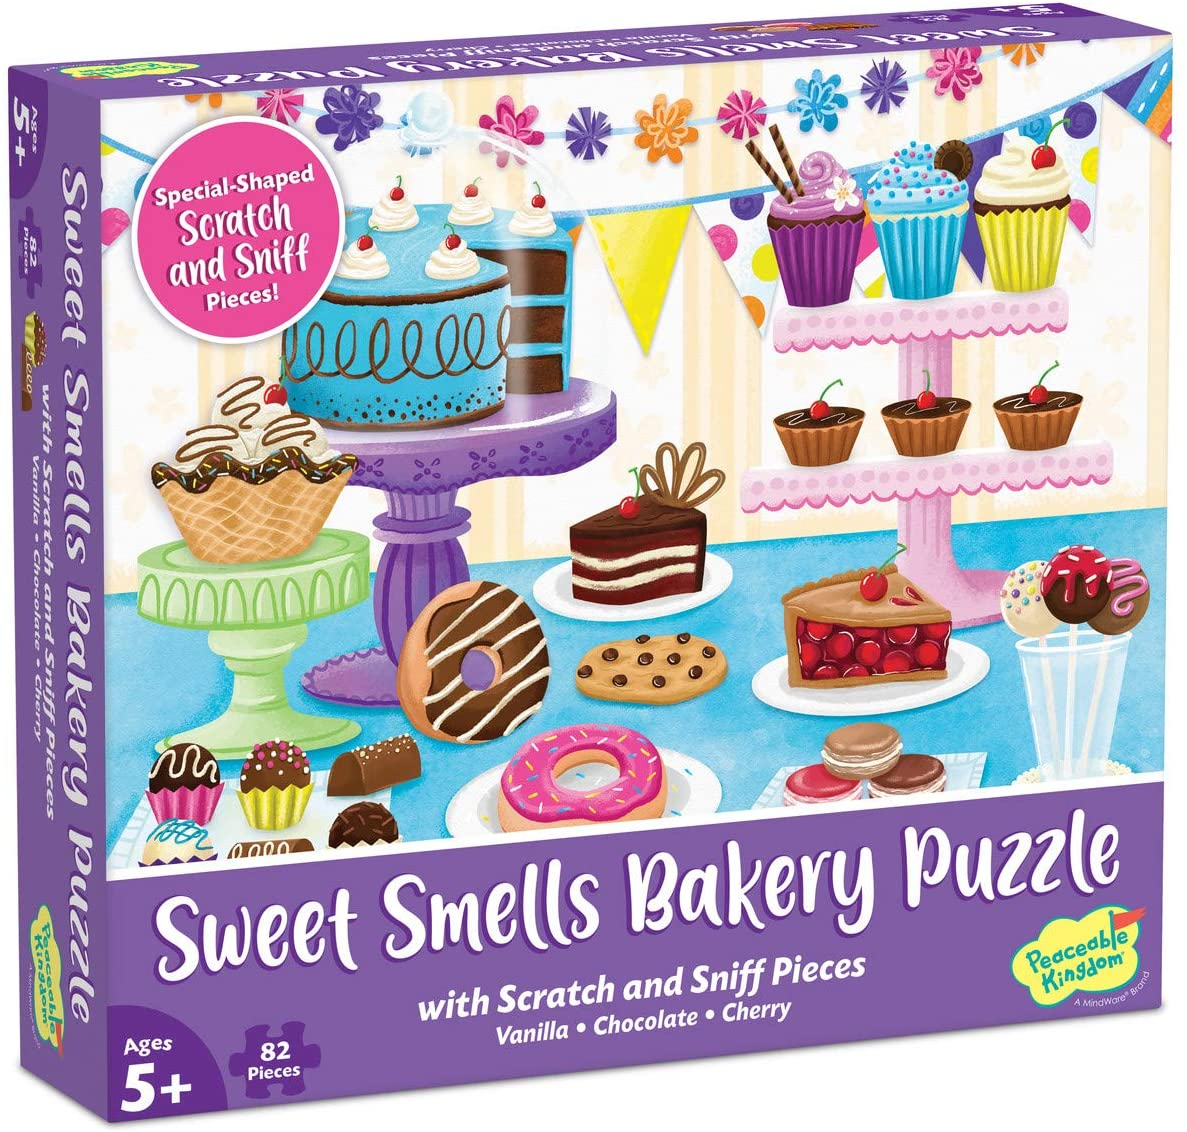 Peaceable Kingdom Scratch & Sniff Puzzles – Sweet Smells Bakery - 82pc Sensory Puzzle for Kids Ages 5 & up - Vanilla, Chocolate & Cherry scents - Great for classrooms